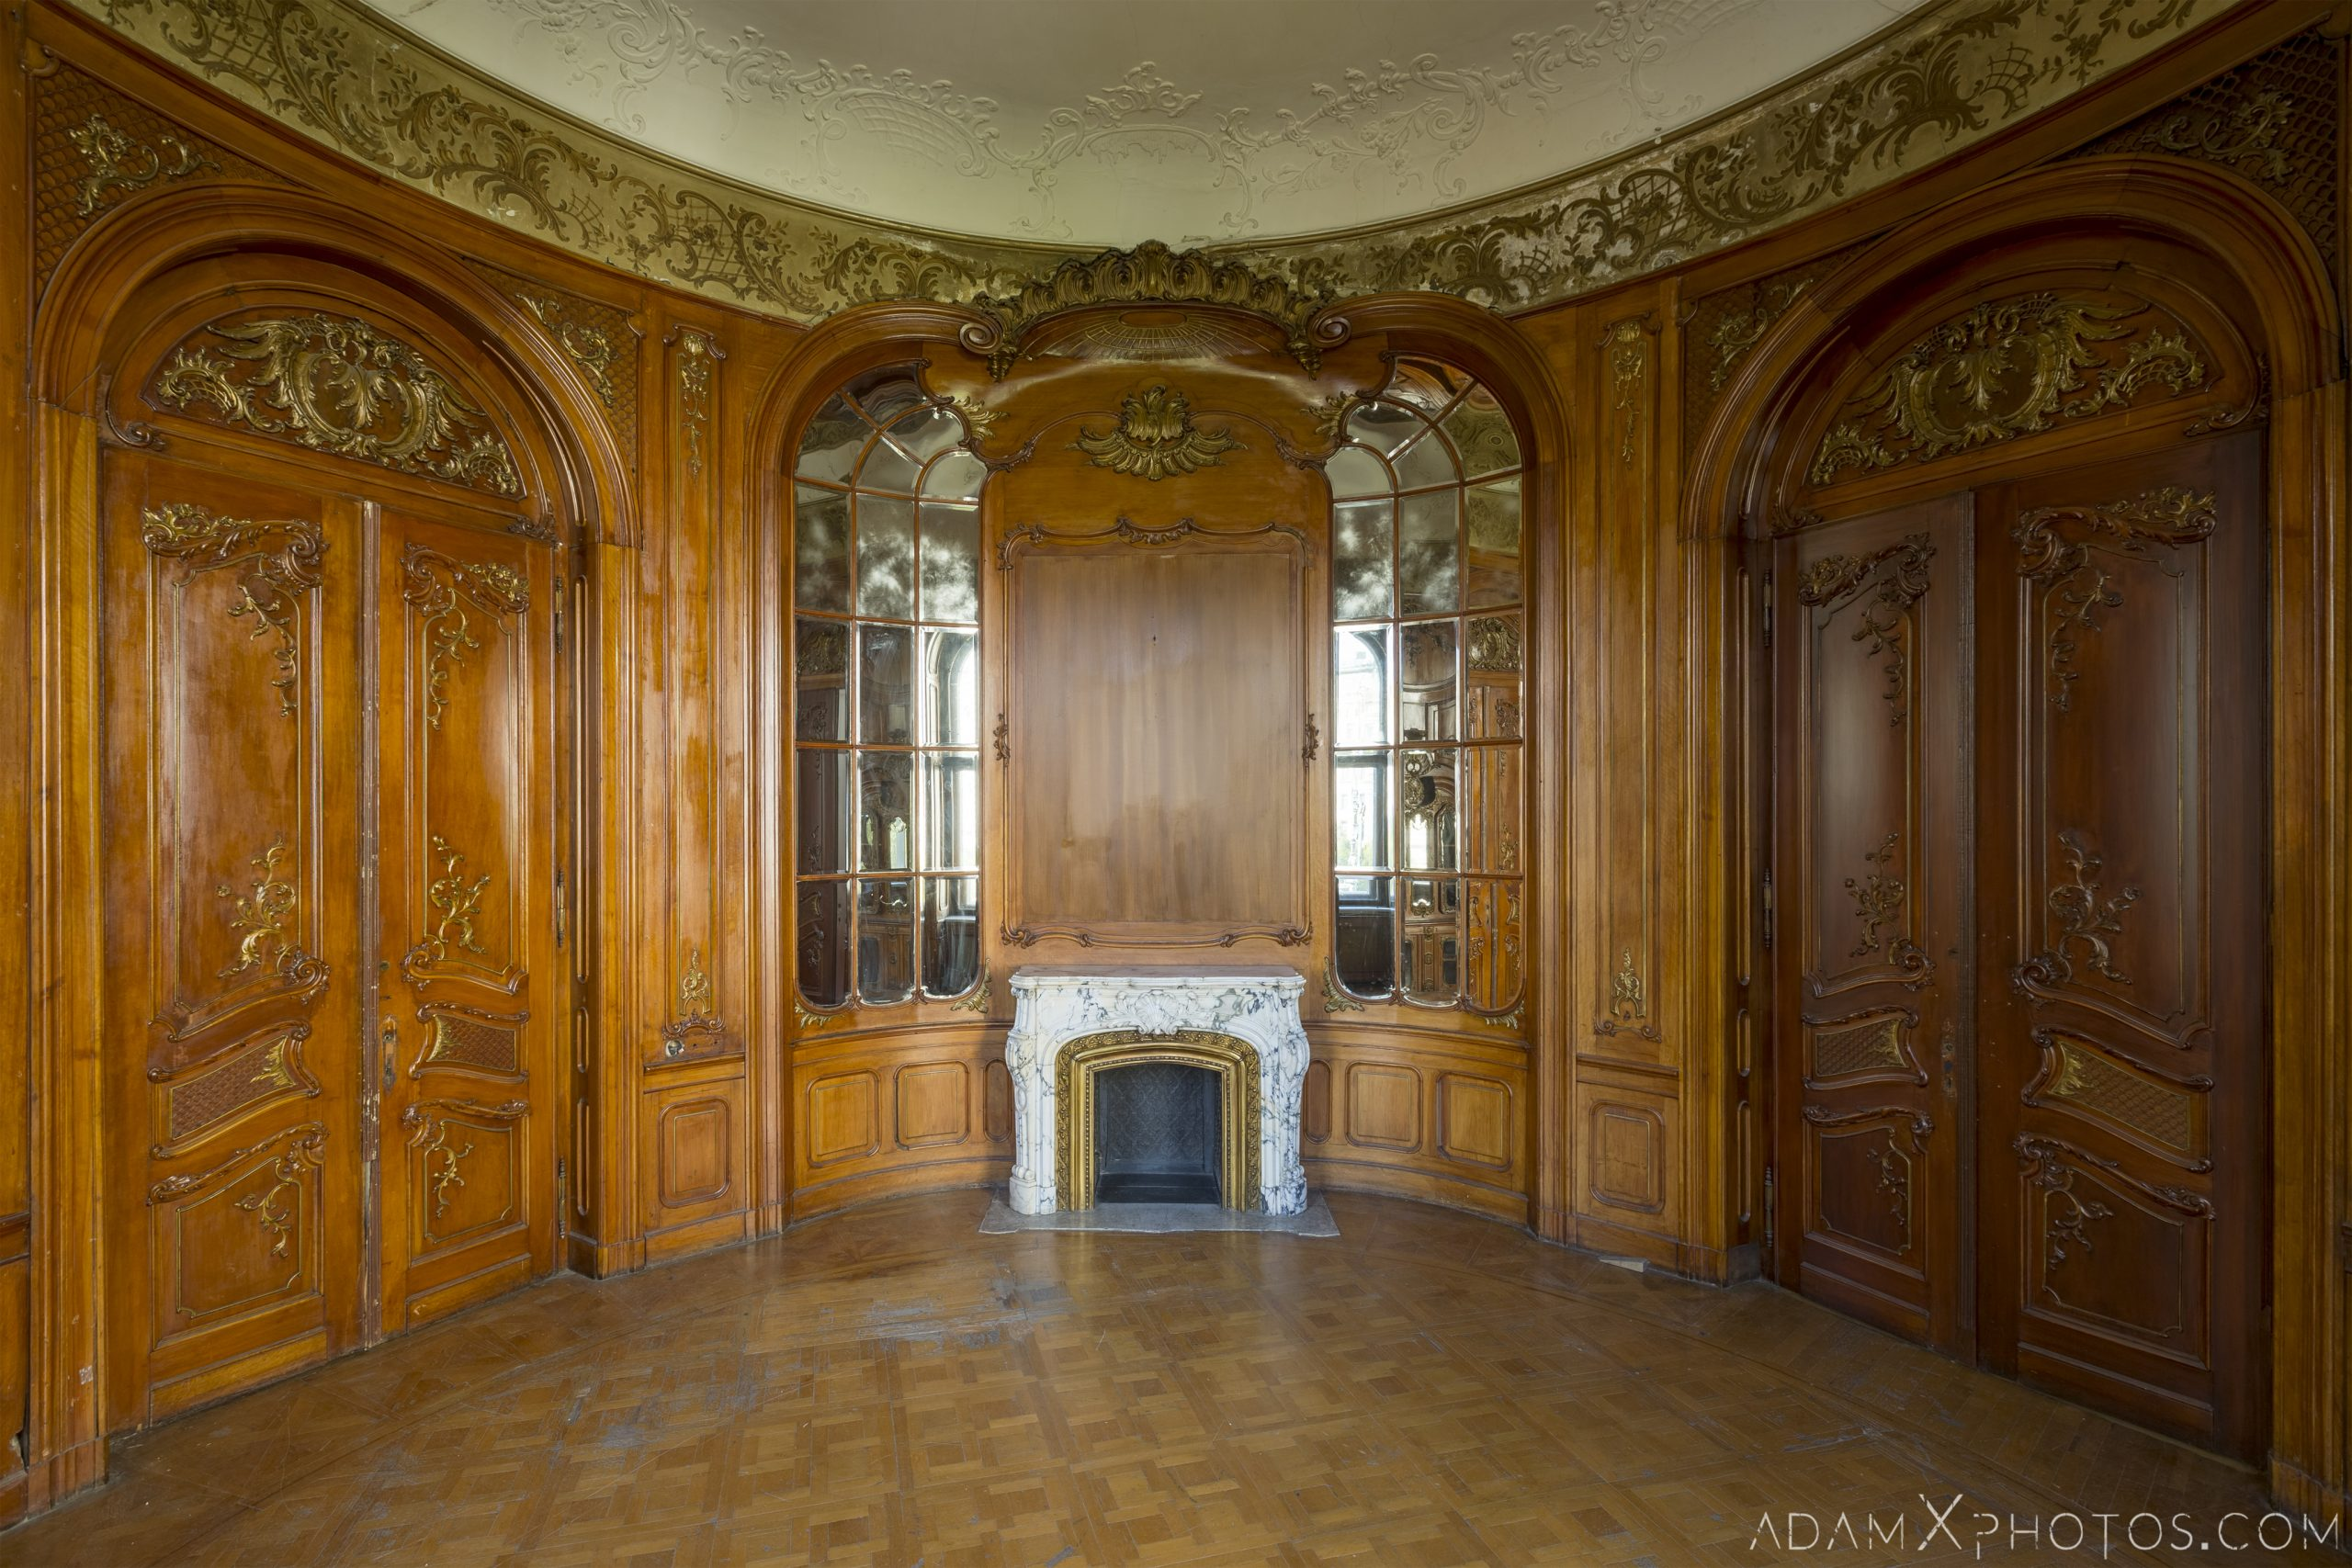 Wood panelling fireplace mirrors Adria Palace Budapest Hungary Adam X Urbex Urban Exploration Access 2018 Blade Runner 2049 Abandoned decay ruins lost forgotten derelict location creepy haunting eerie security ornate grand neo baroque